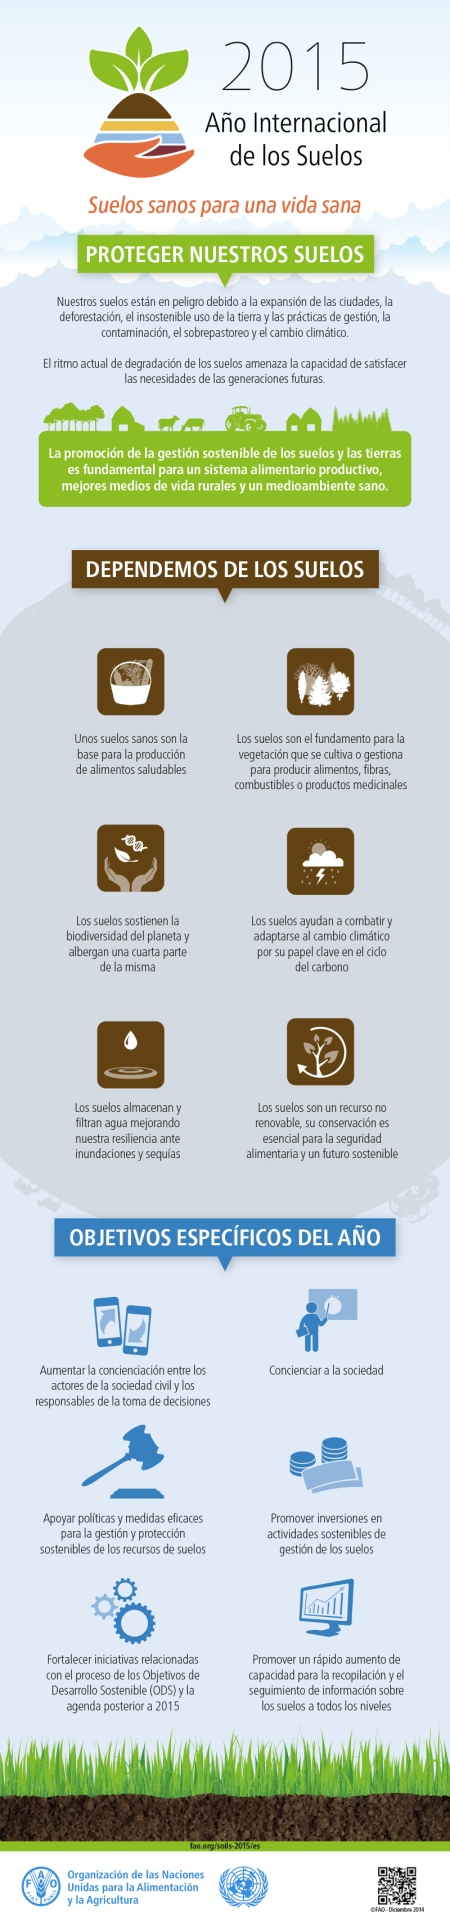 FAO-Infographic-IYS2015-es